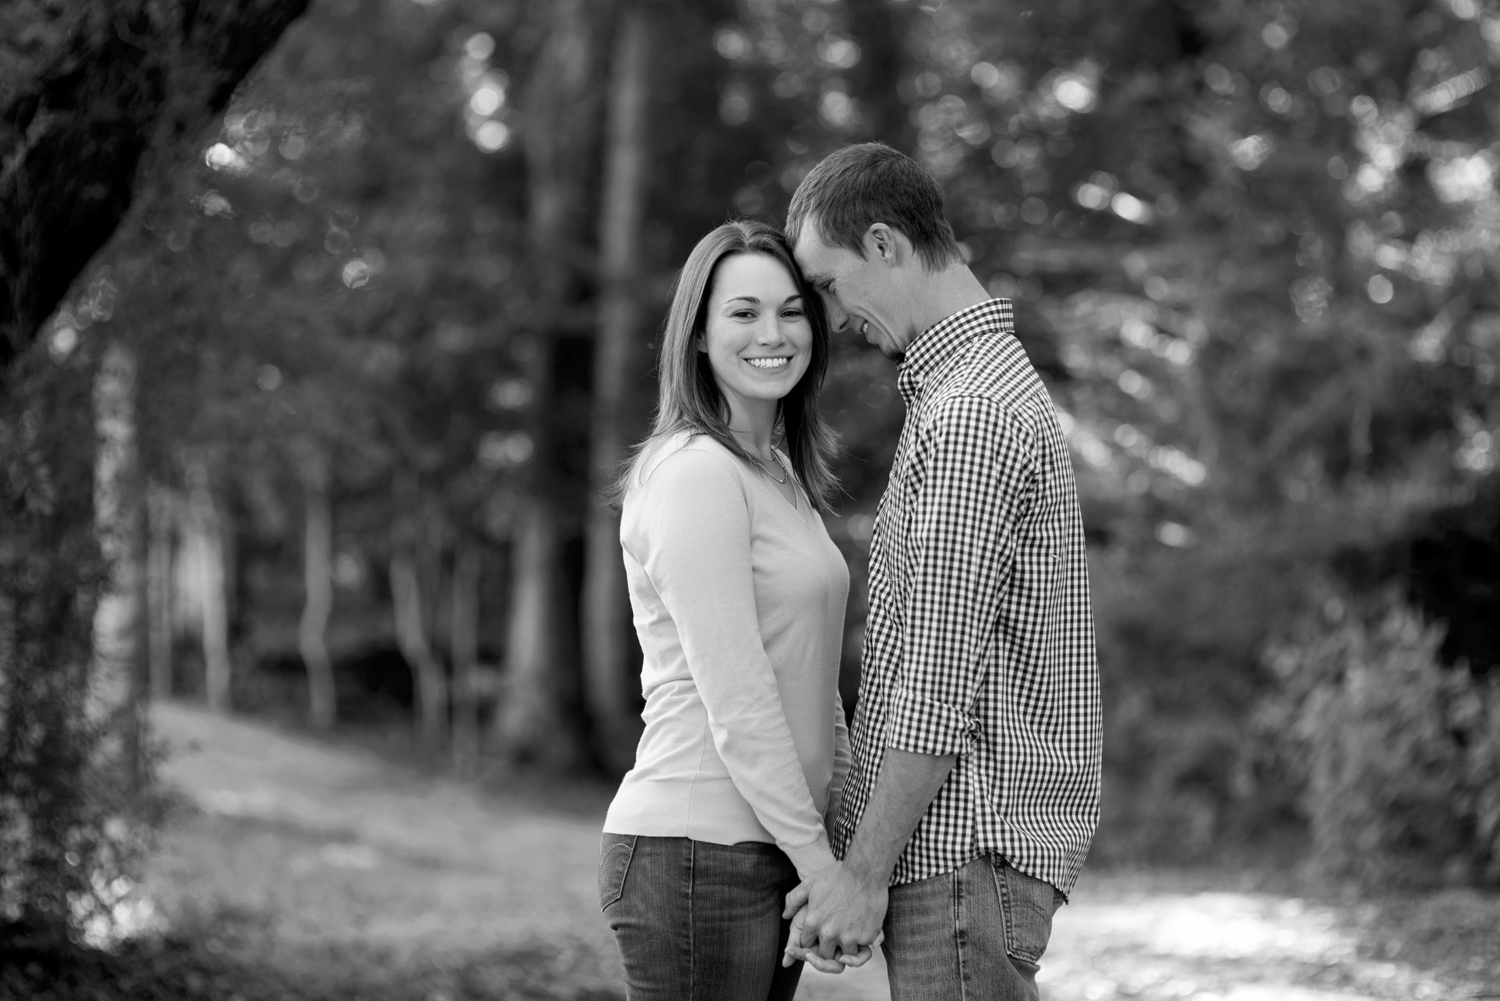 Newlyweds take anniversary portraits at a park in the fall (black and white)